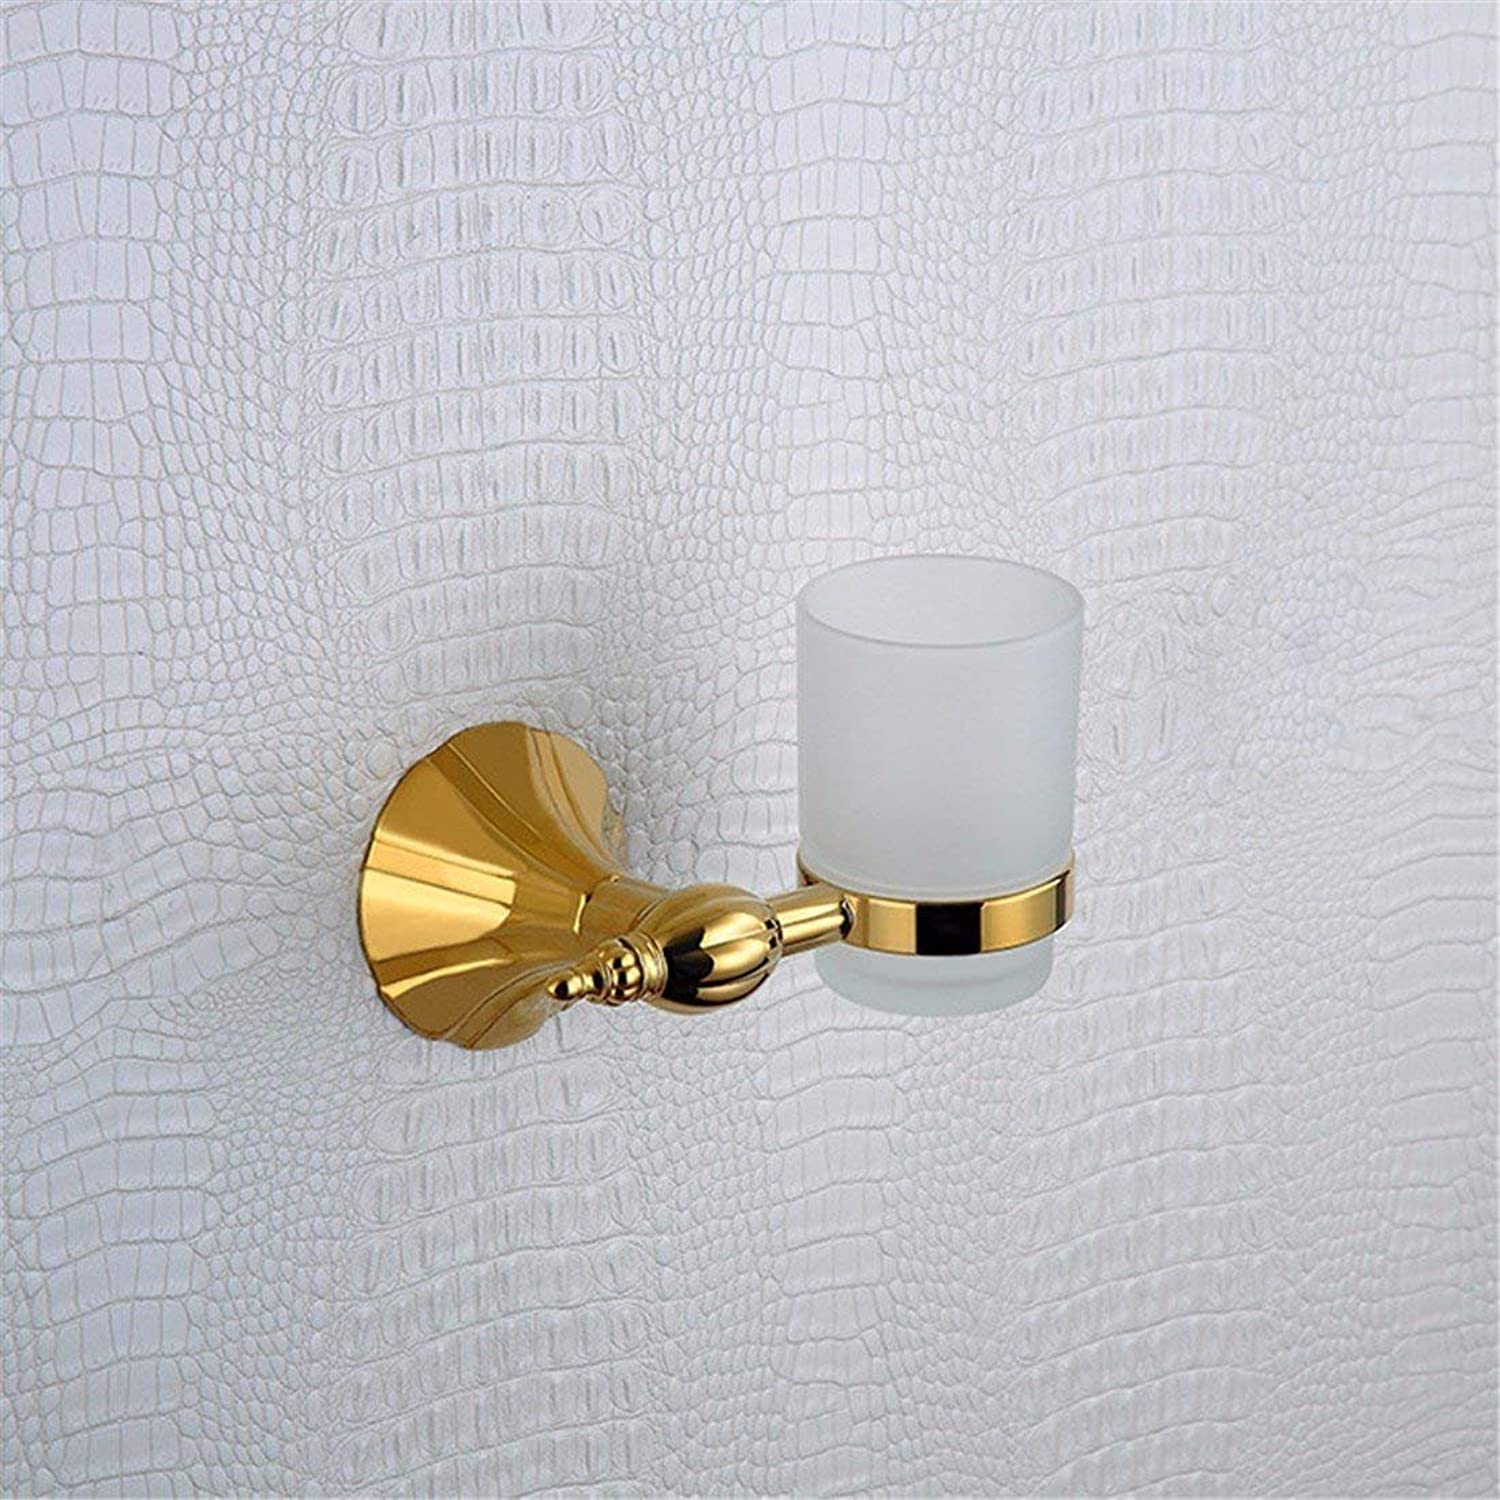 European Style of Christmas Any Copper, Titanium, Base of Petals of gold, Accessories of Bathroom, Toilet, Cabinet to Brush, Toilet Paper Ring,Rack Single Cup